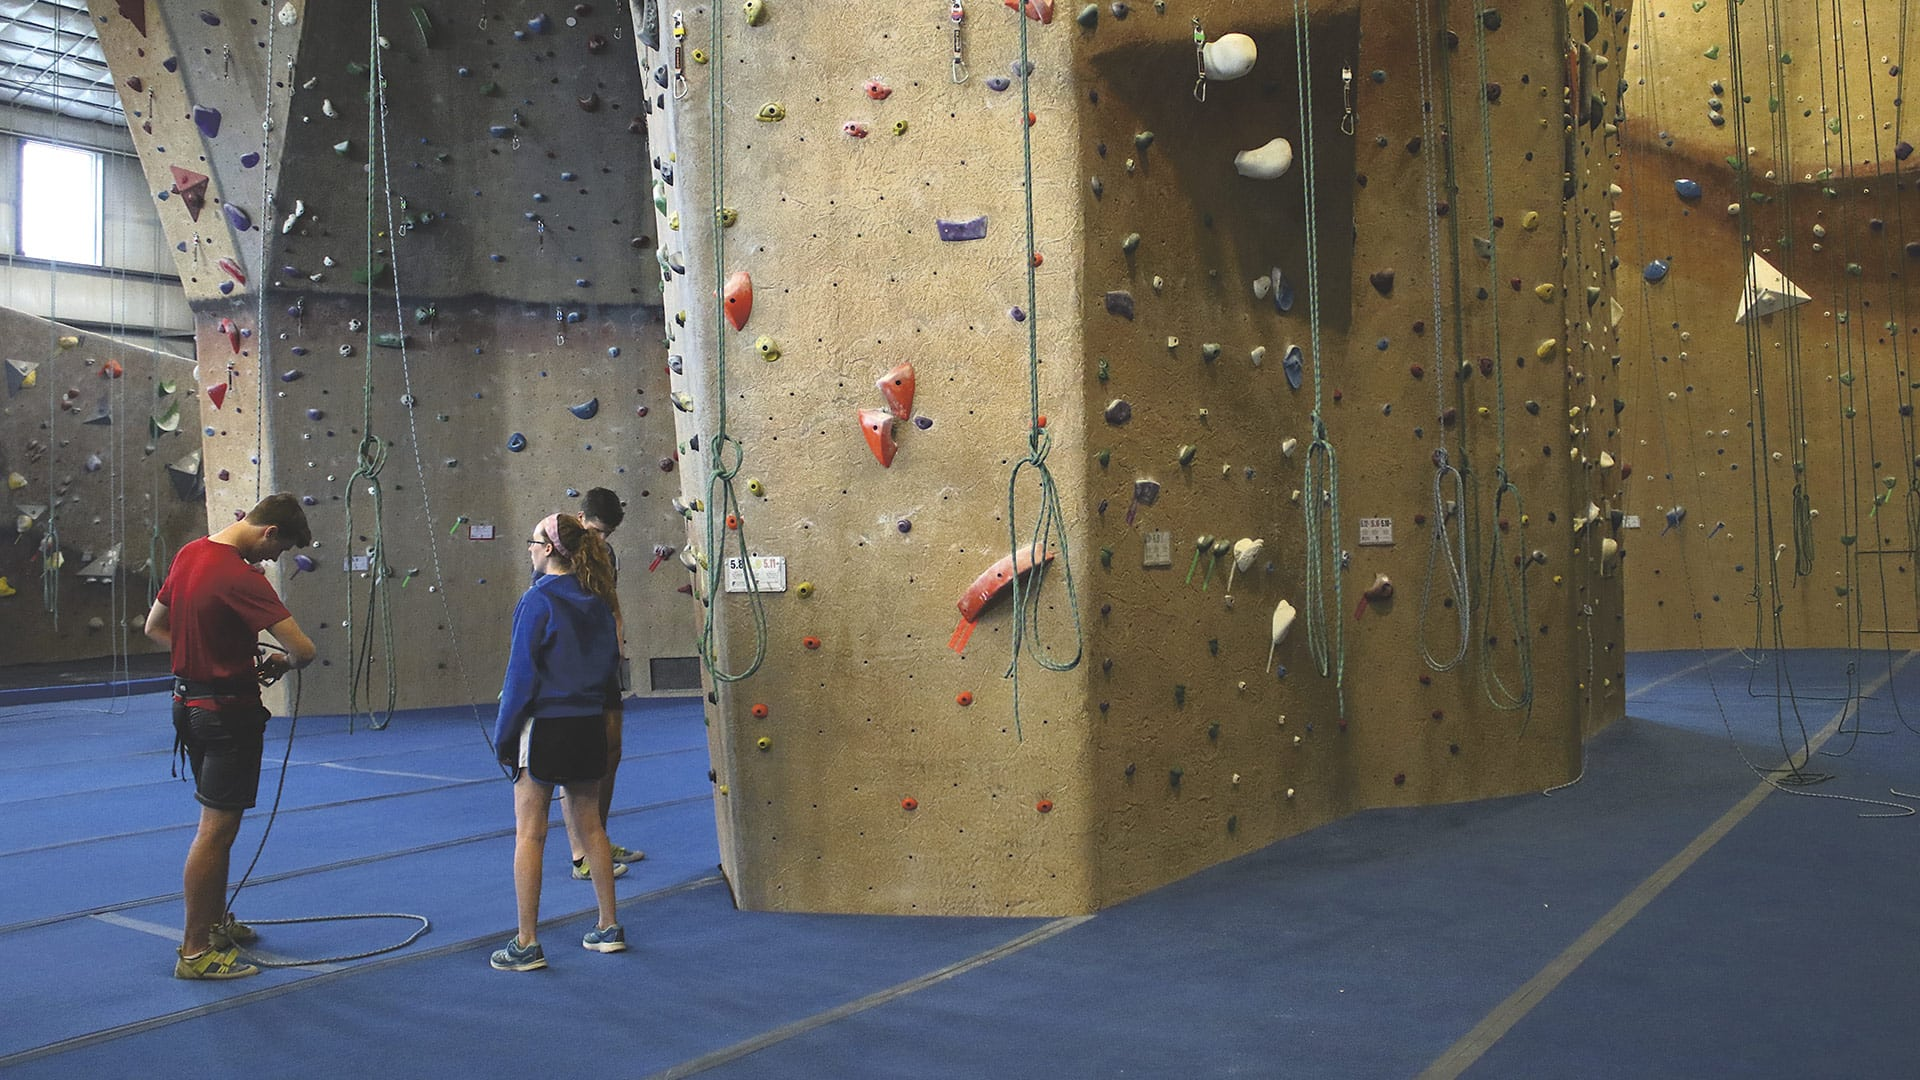 Climbers prepare to scale the high walls at Central Rock Gym.